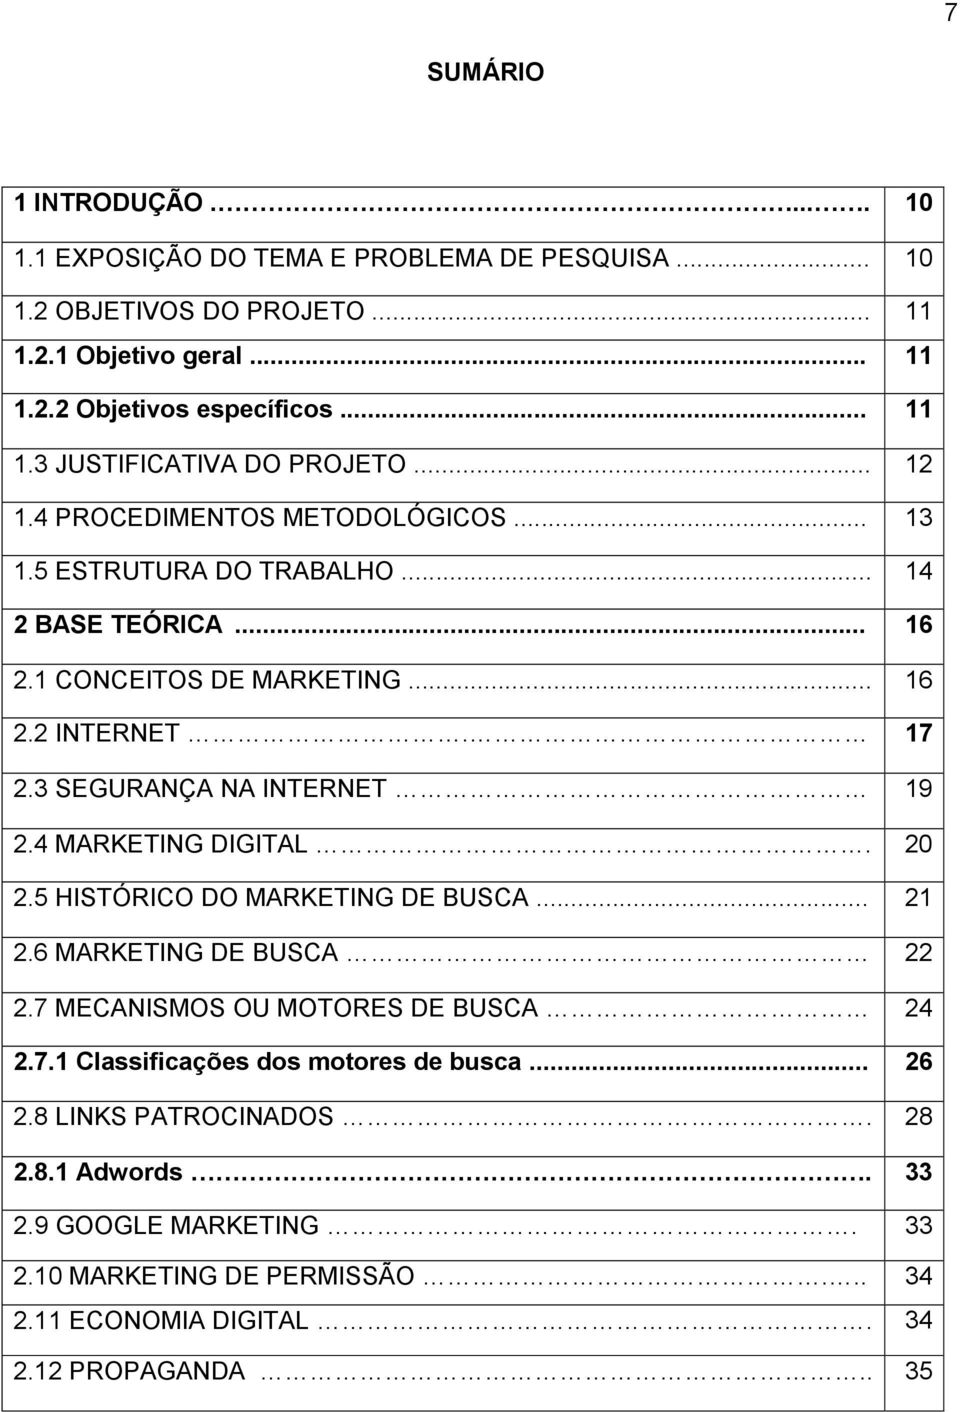 4 MARKETING DIGITAL. 20 2.5 HISTÓRICO DO MARKETING DE BUSCA... 21 2.6 MARKETING DE BUSCA 22 2.7 MECANISMOS OU MOTORES DE BUSCA 24 2.7.1 Classificações dos motores de busca... 26 2.